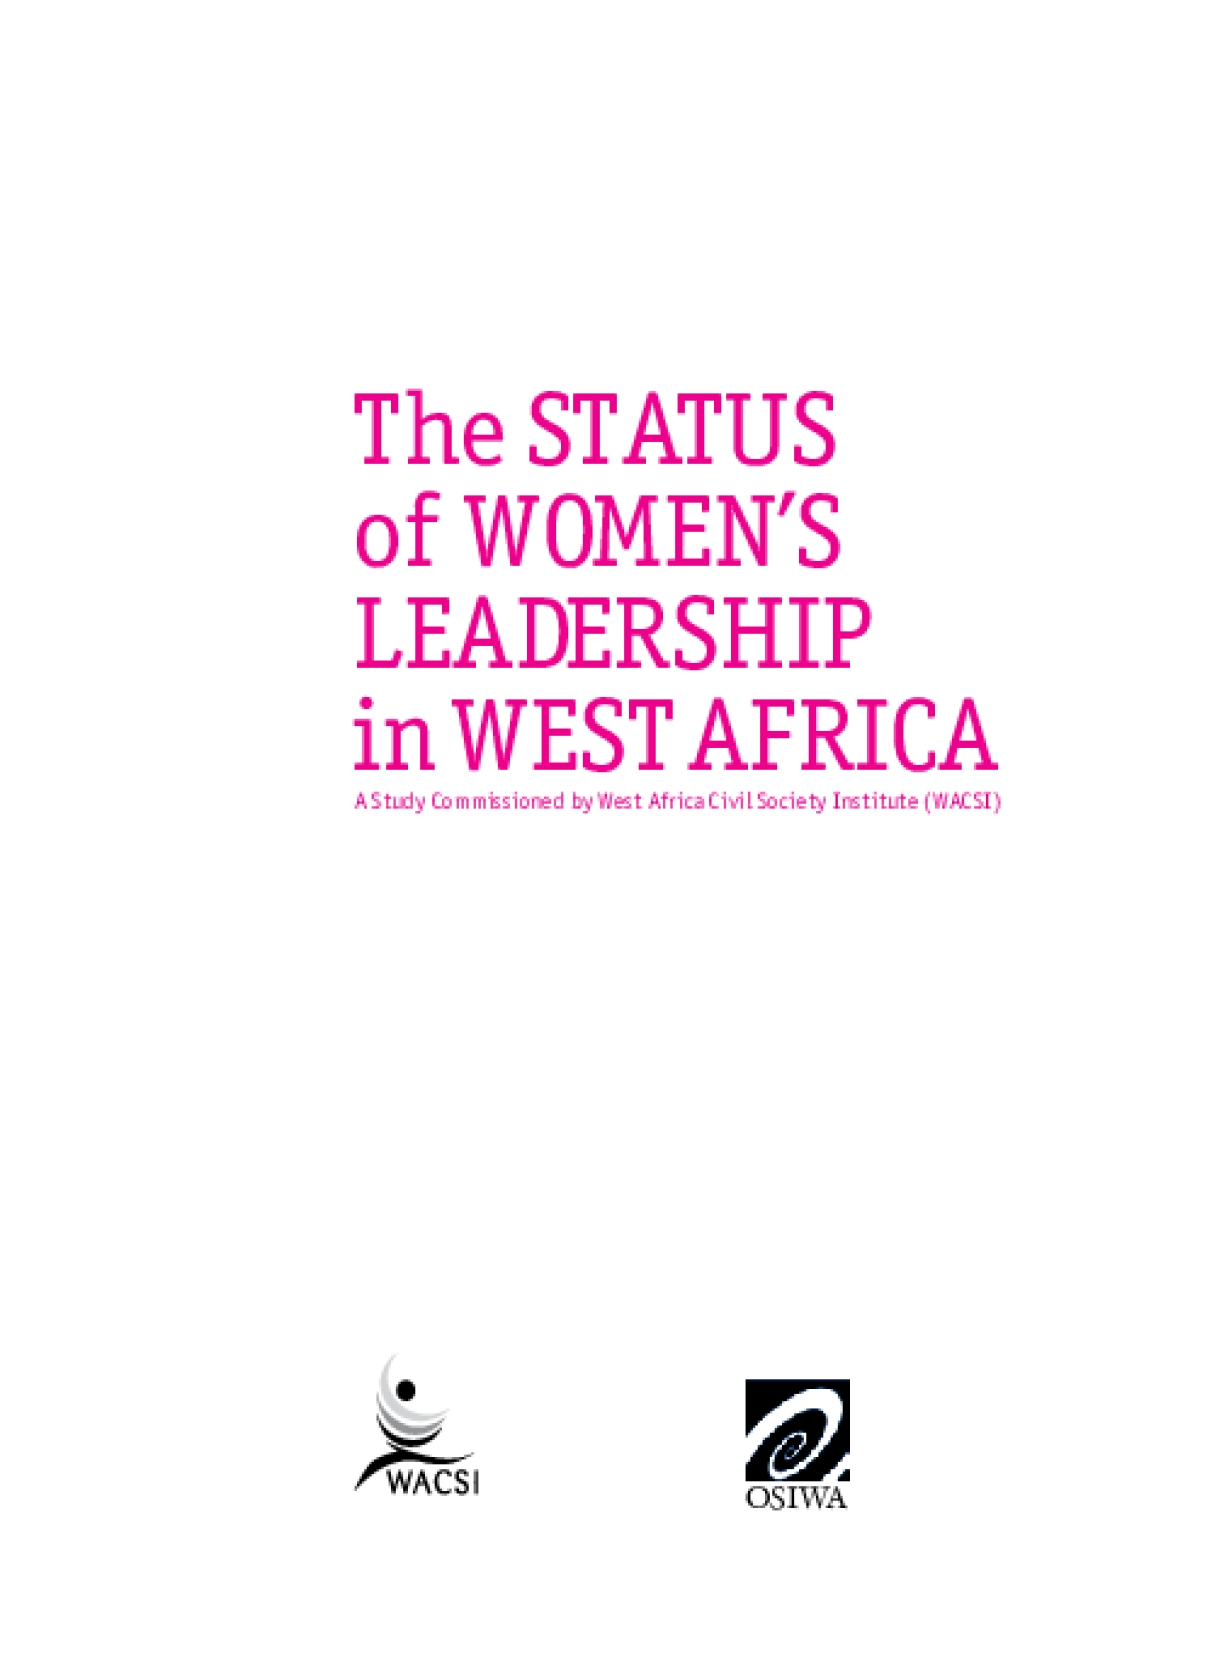 The Status of Women's Leadership in West Africa